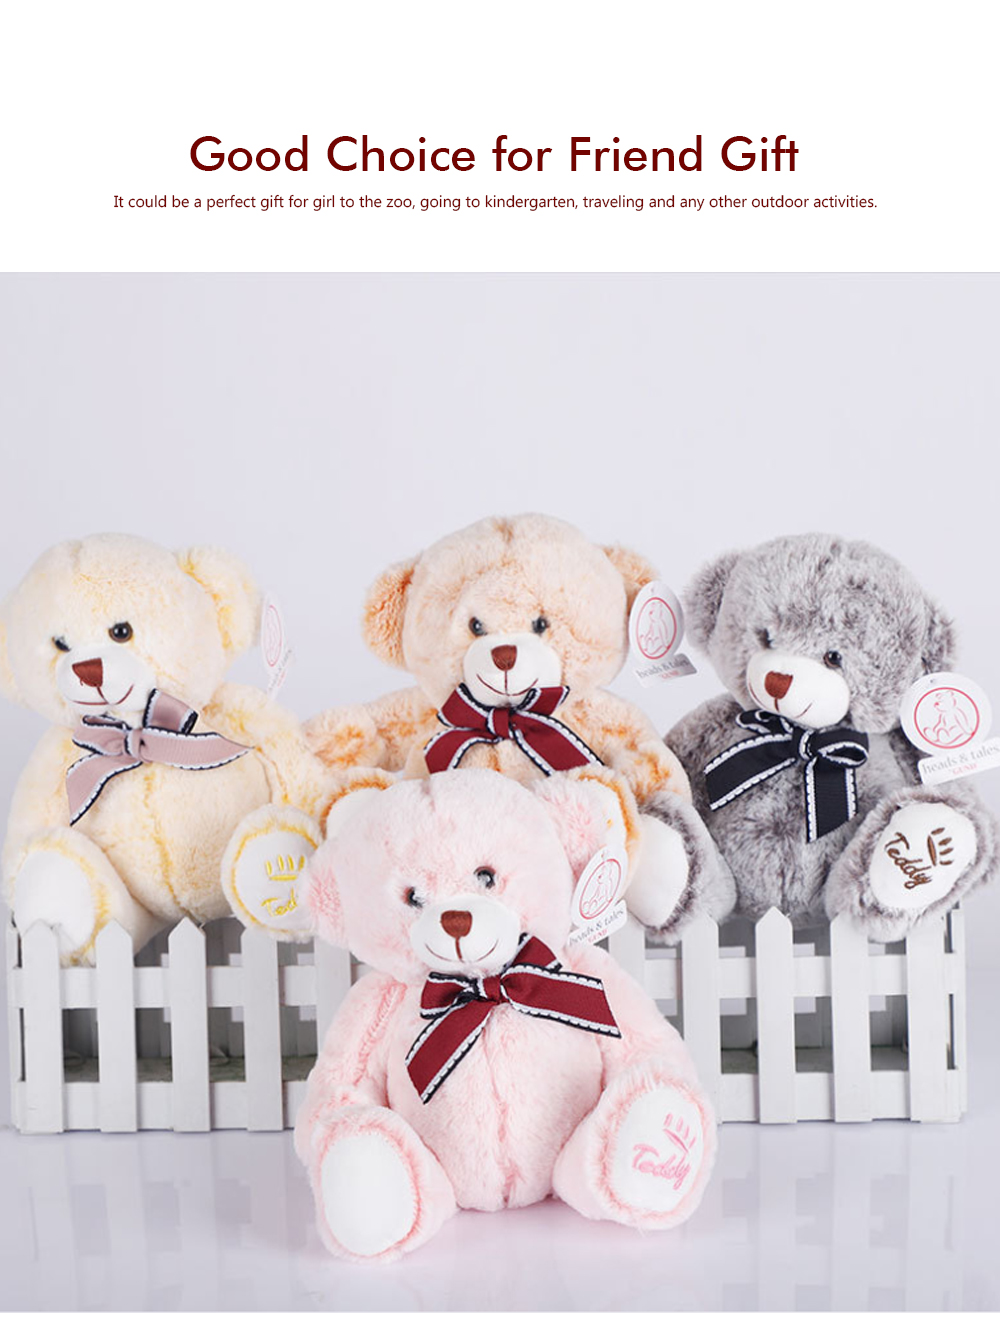 Bow Tie Bear Plush Toy, Grab Doll Machine Toys, Gifts for Decorating Housing and Cars 4